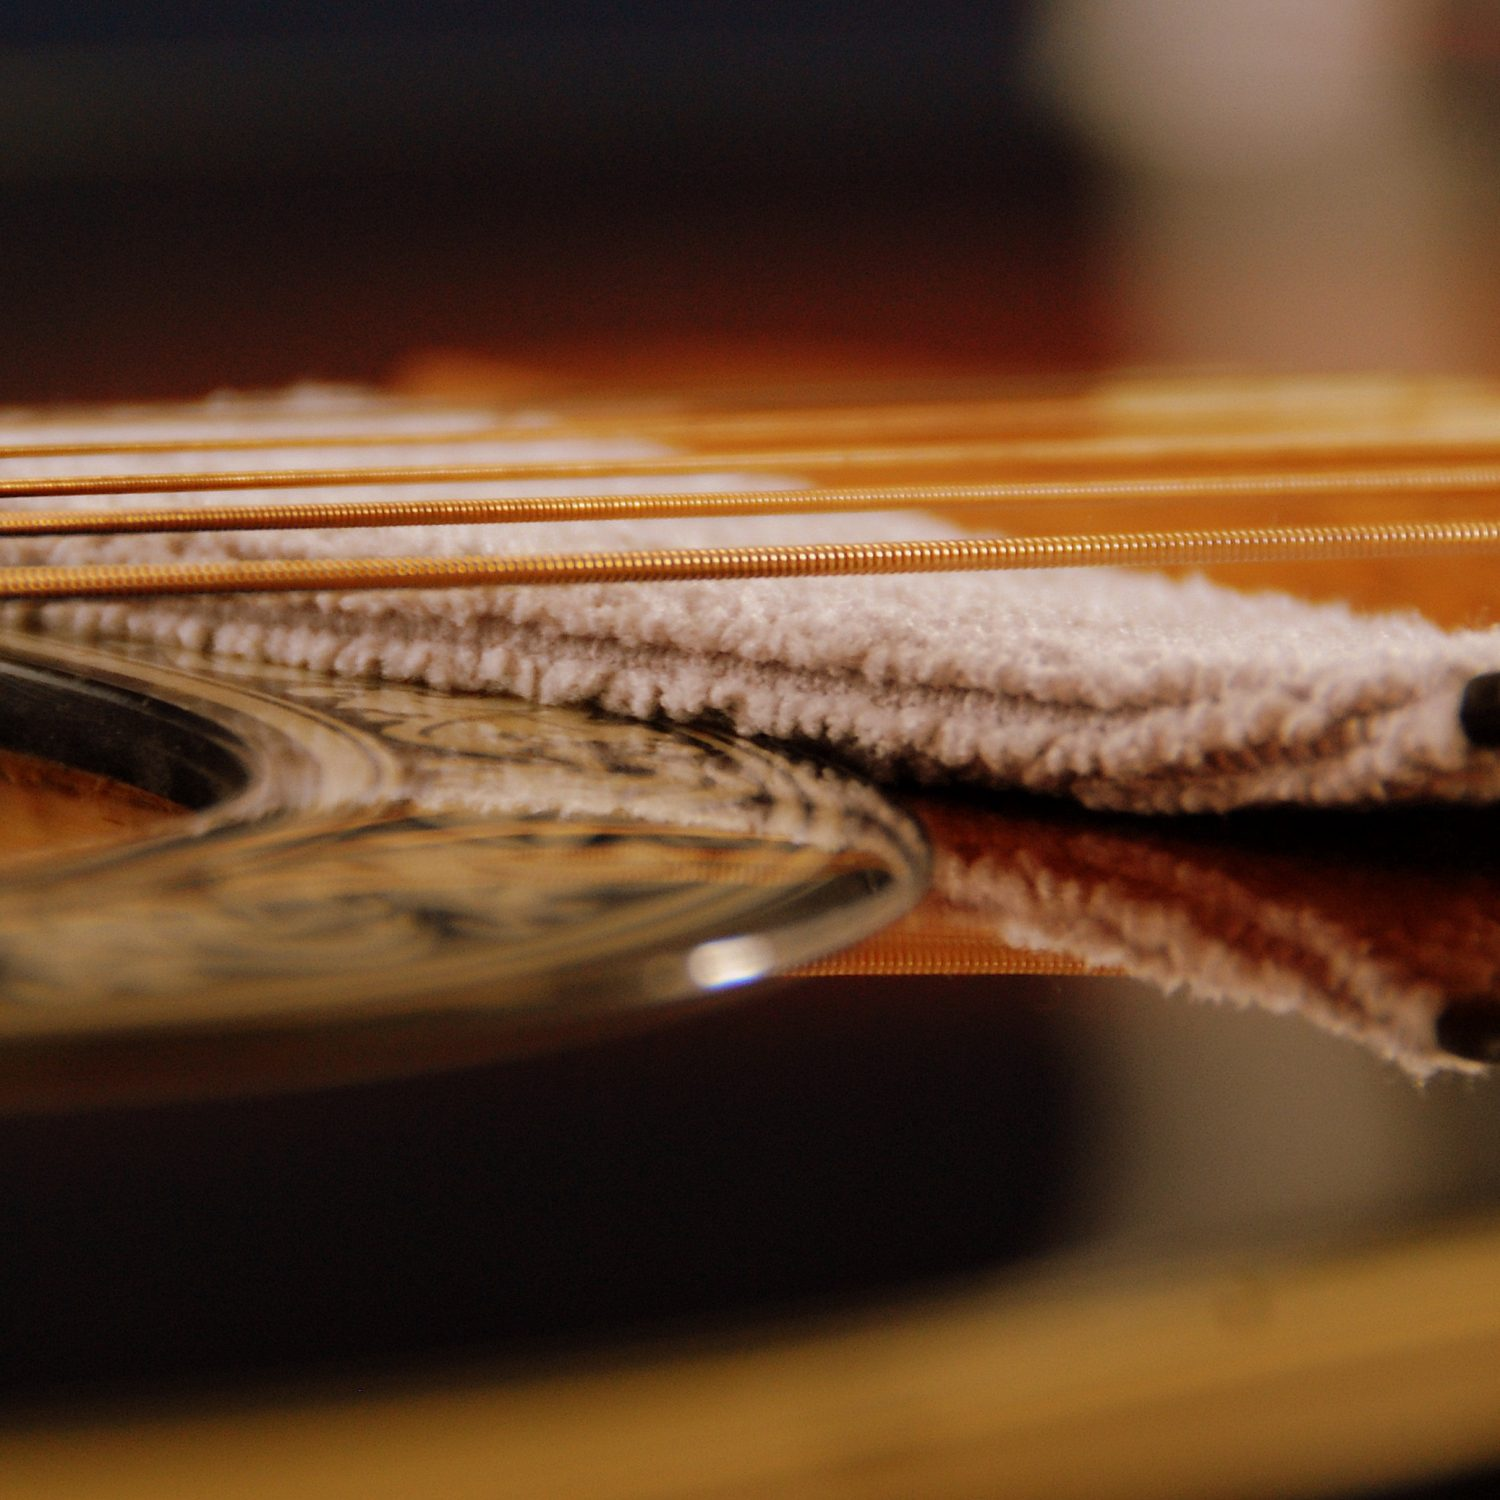 MN205-guitar surface under string close up